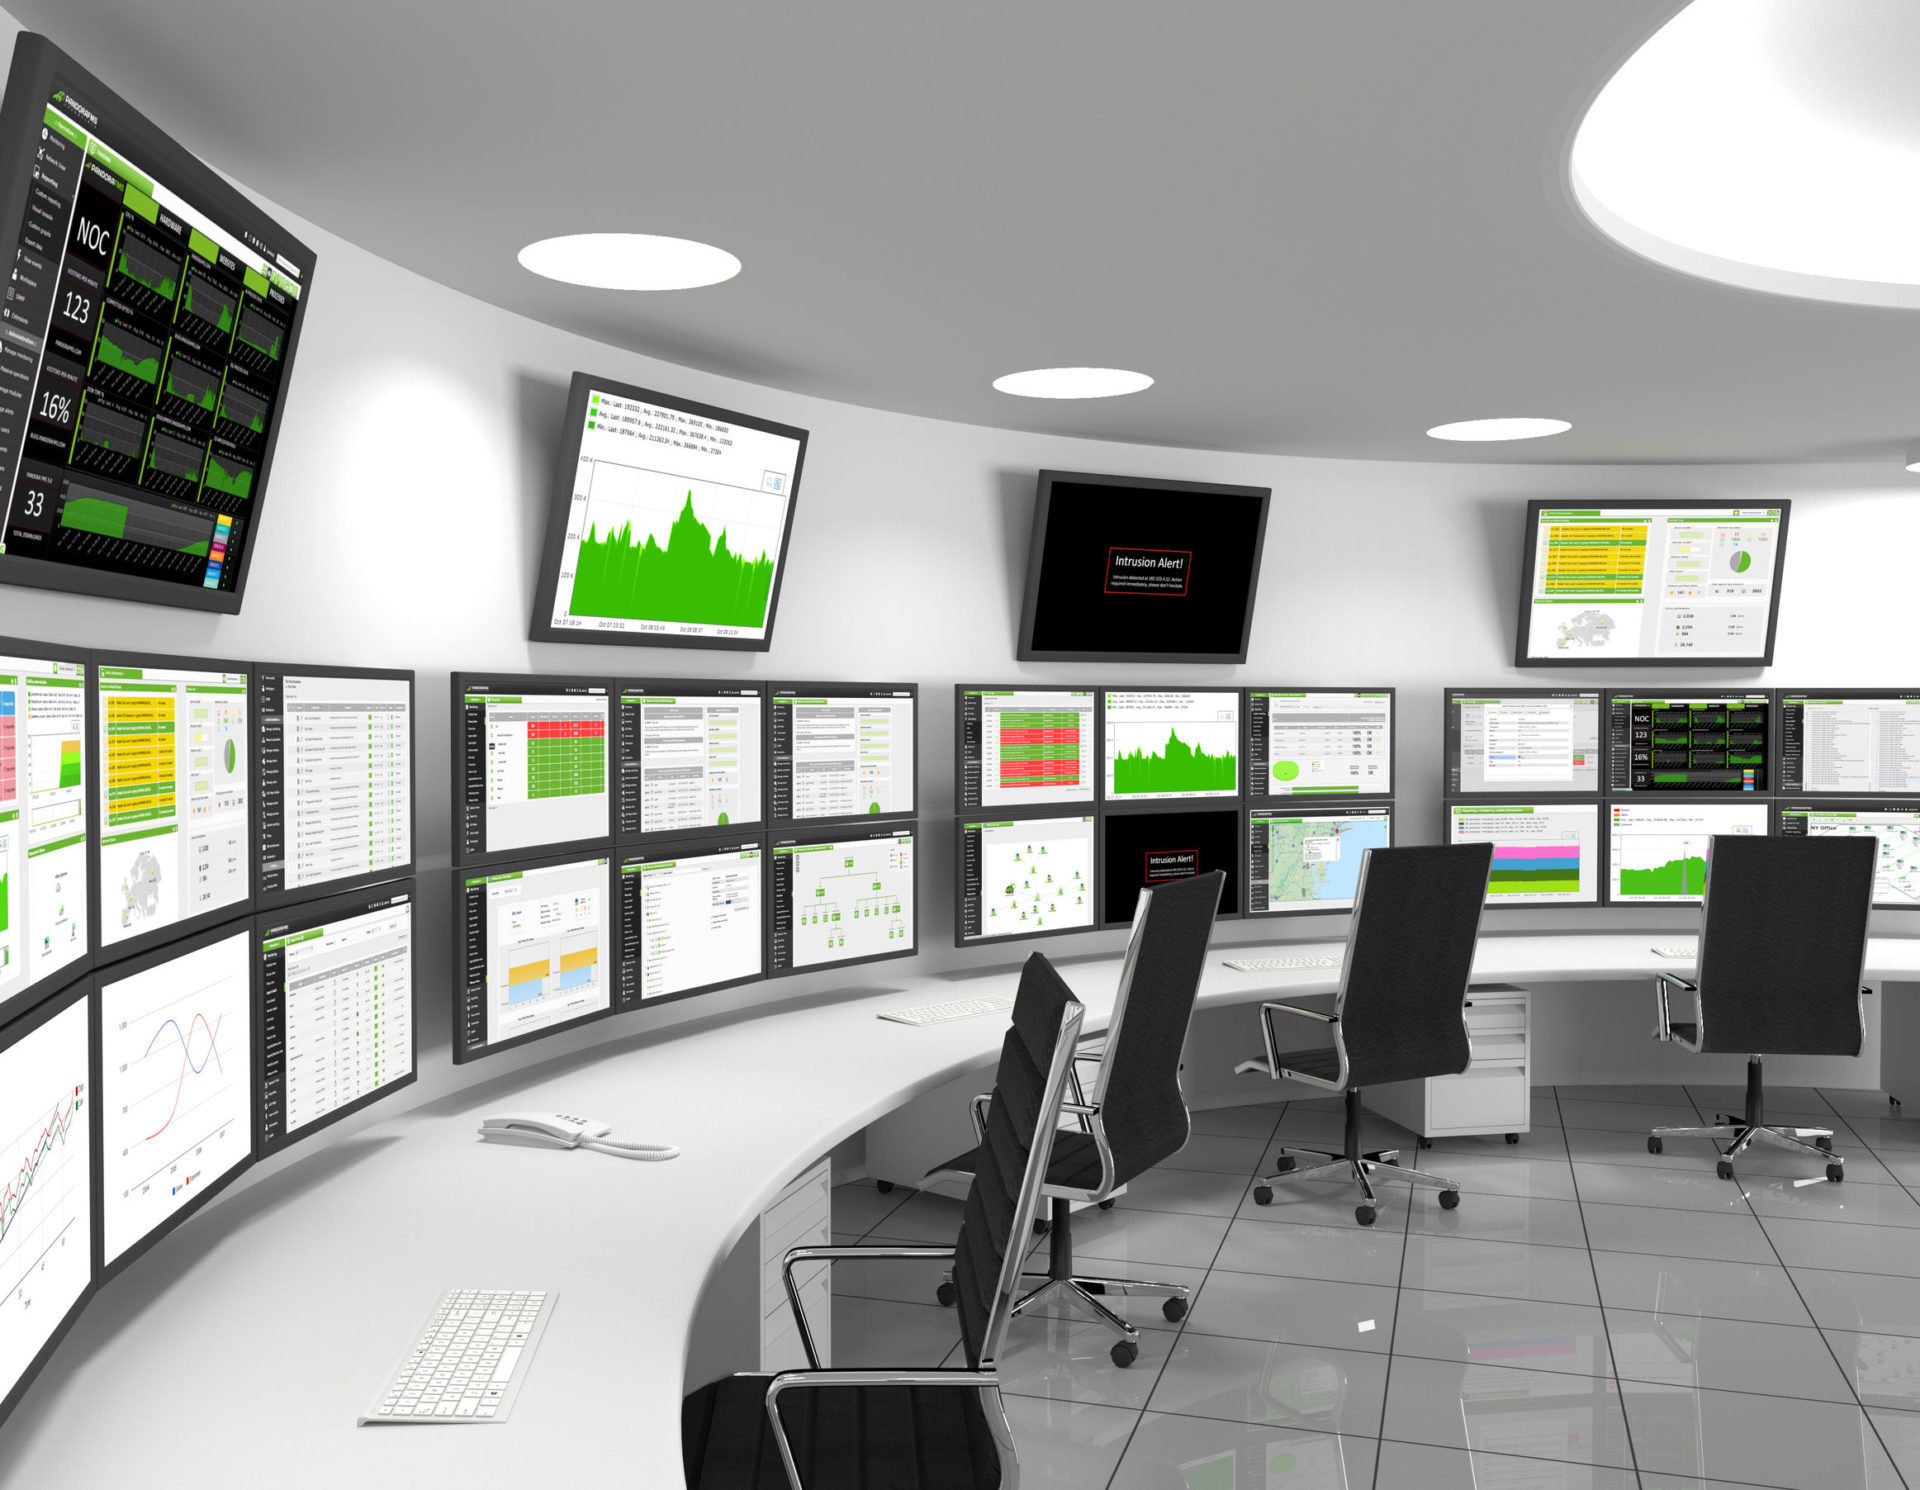 Image of a network operations centre.